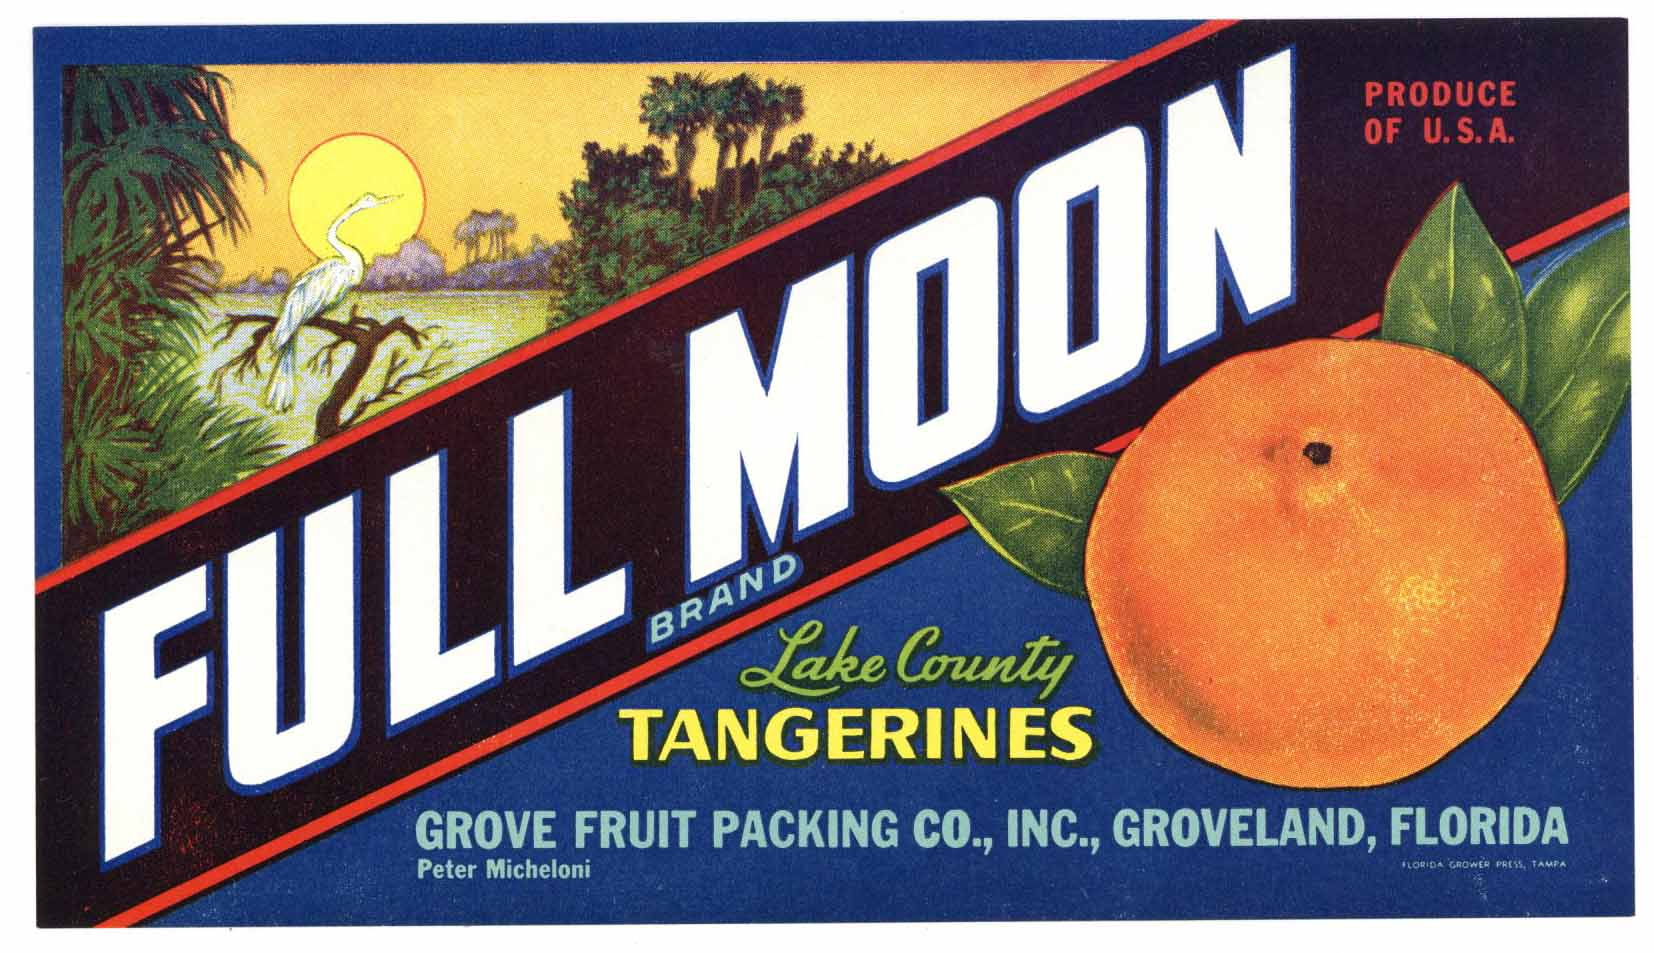 Full Moon Brand Vintage Groveland Florida Citrus Crate Label, n